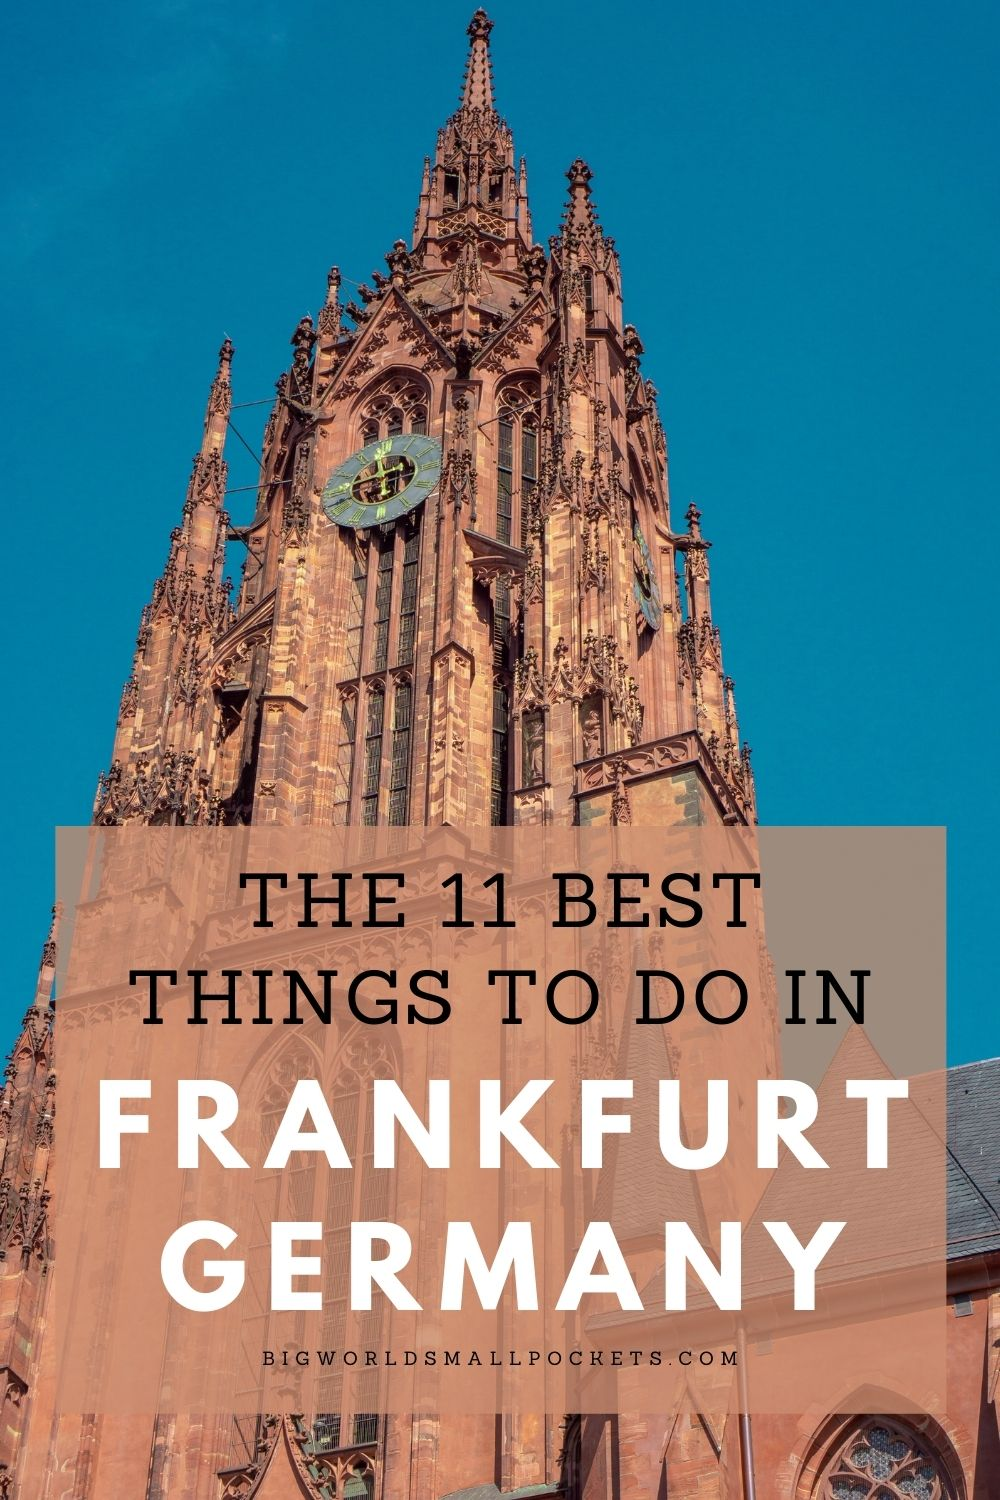 The 11 Best Things to Do in Frankfurt, Germany